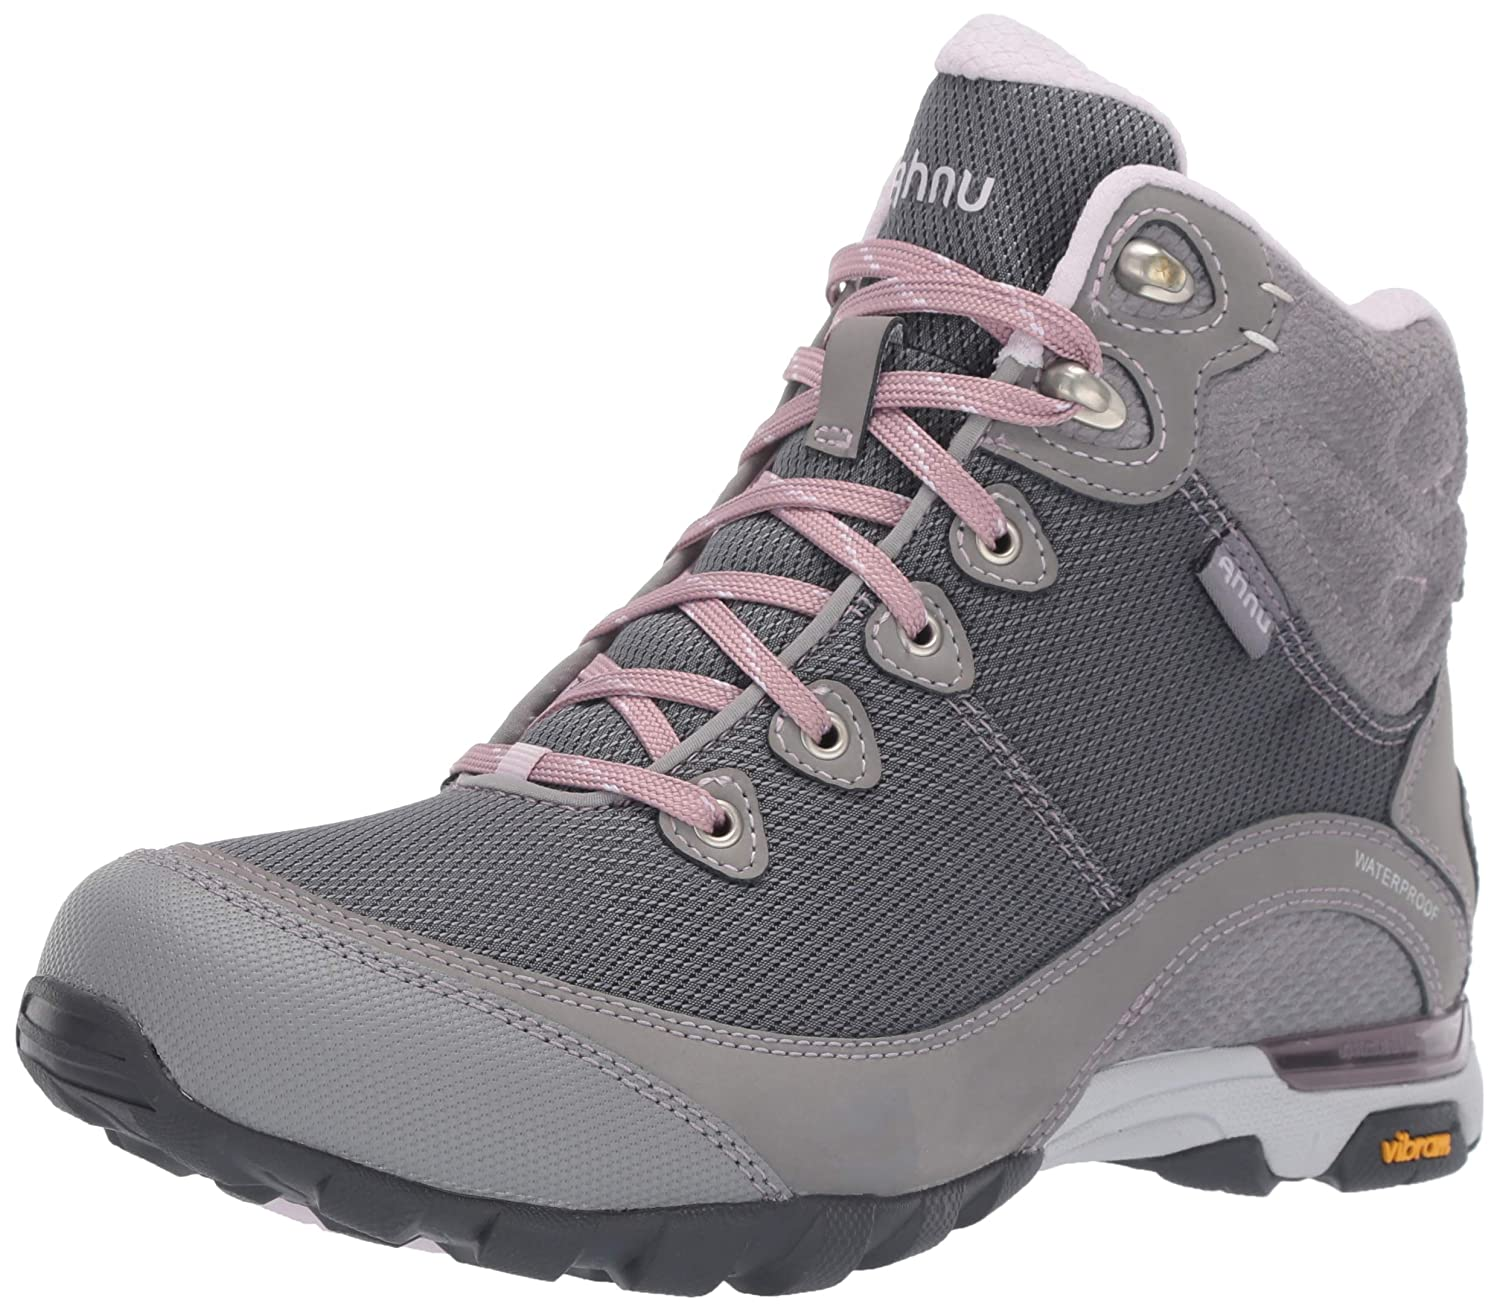 Image of Ahnu Women's W Sugarpine II Waterproof Ripstop Hiking Boot, Wild Dove/Orchid Ice, 11 Medium US Hiking Boots